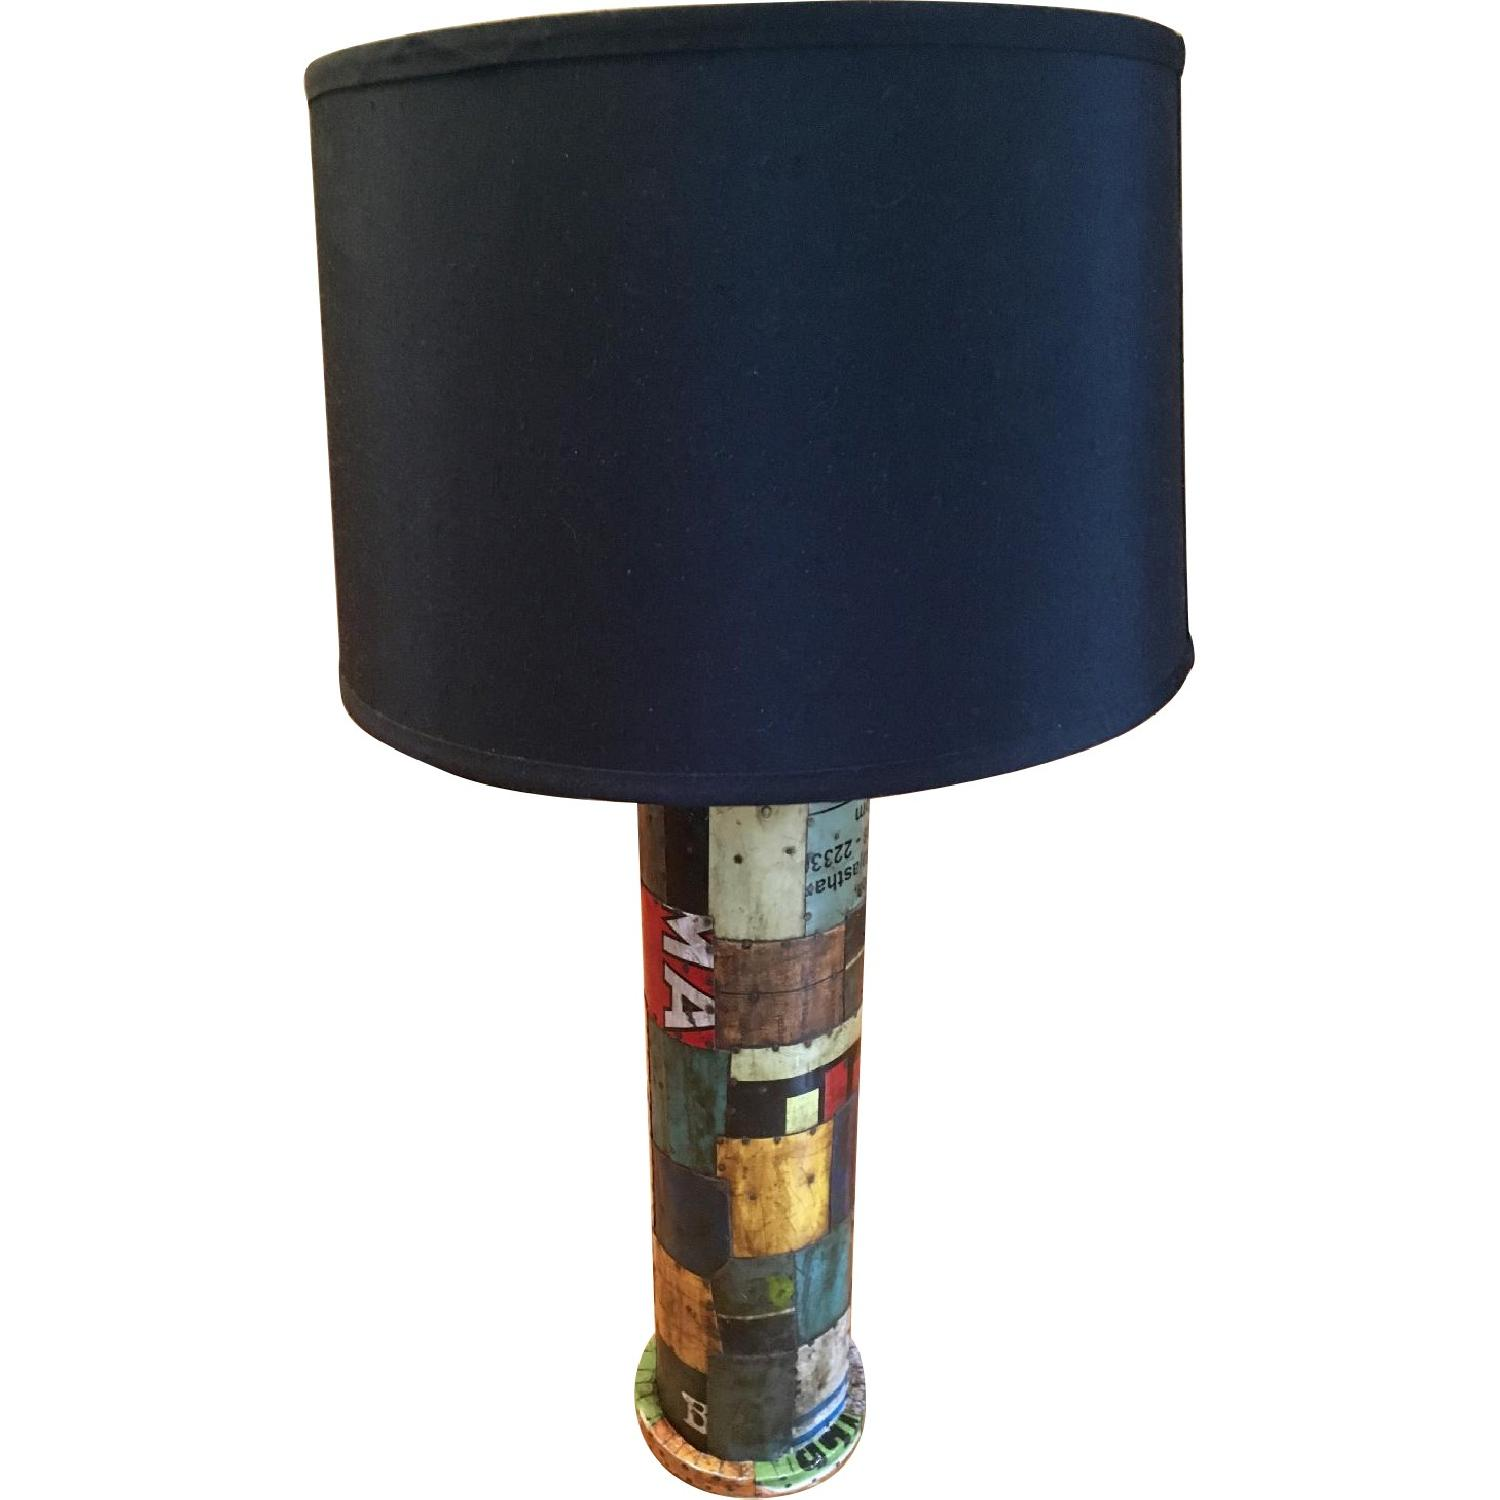 Eclectic Table Lamp